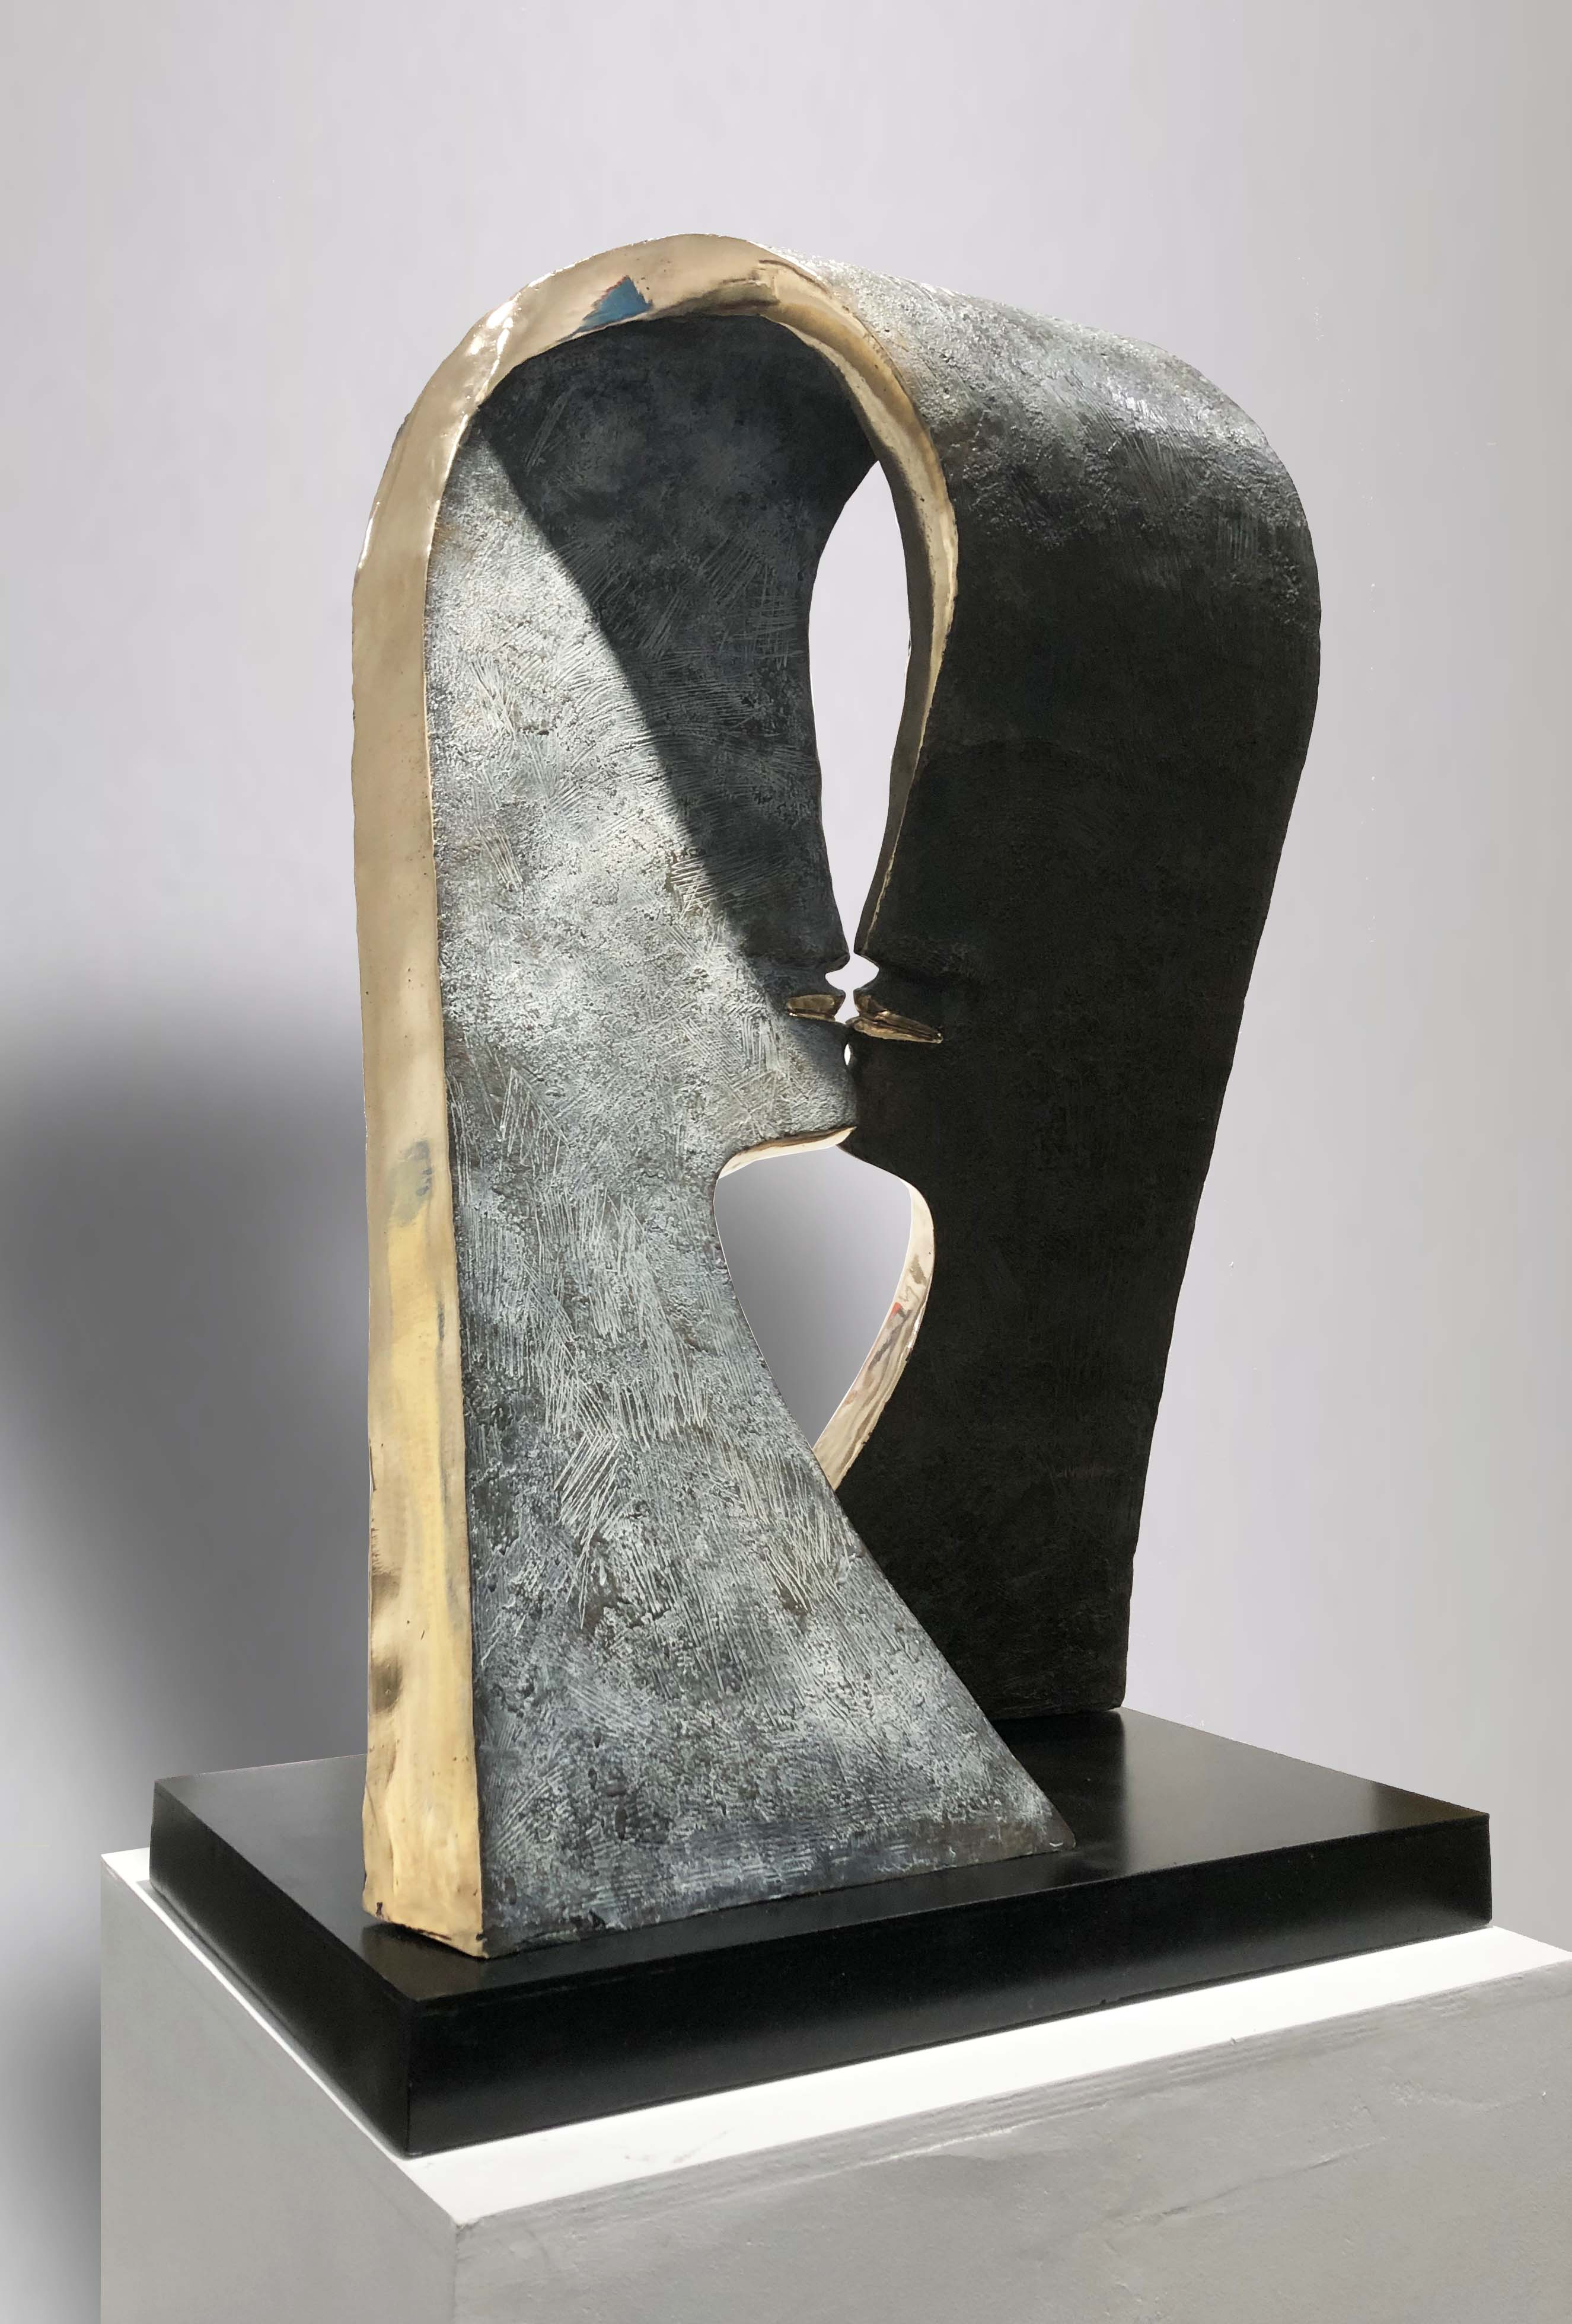 FIRST KISS Bronze 86x60x35cm / 33,8x23,6x13,7 inches